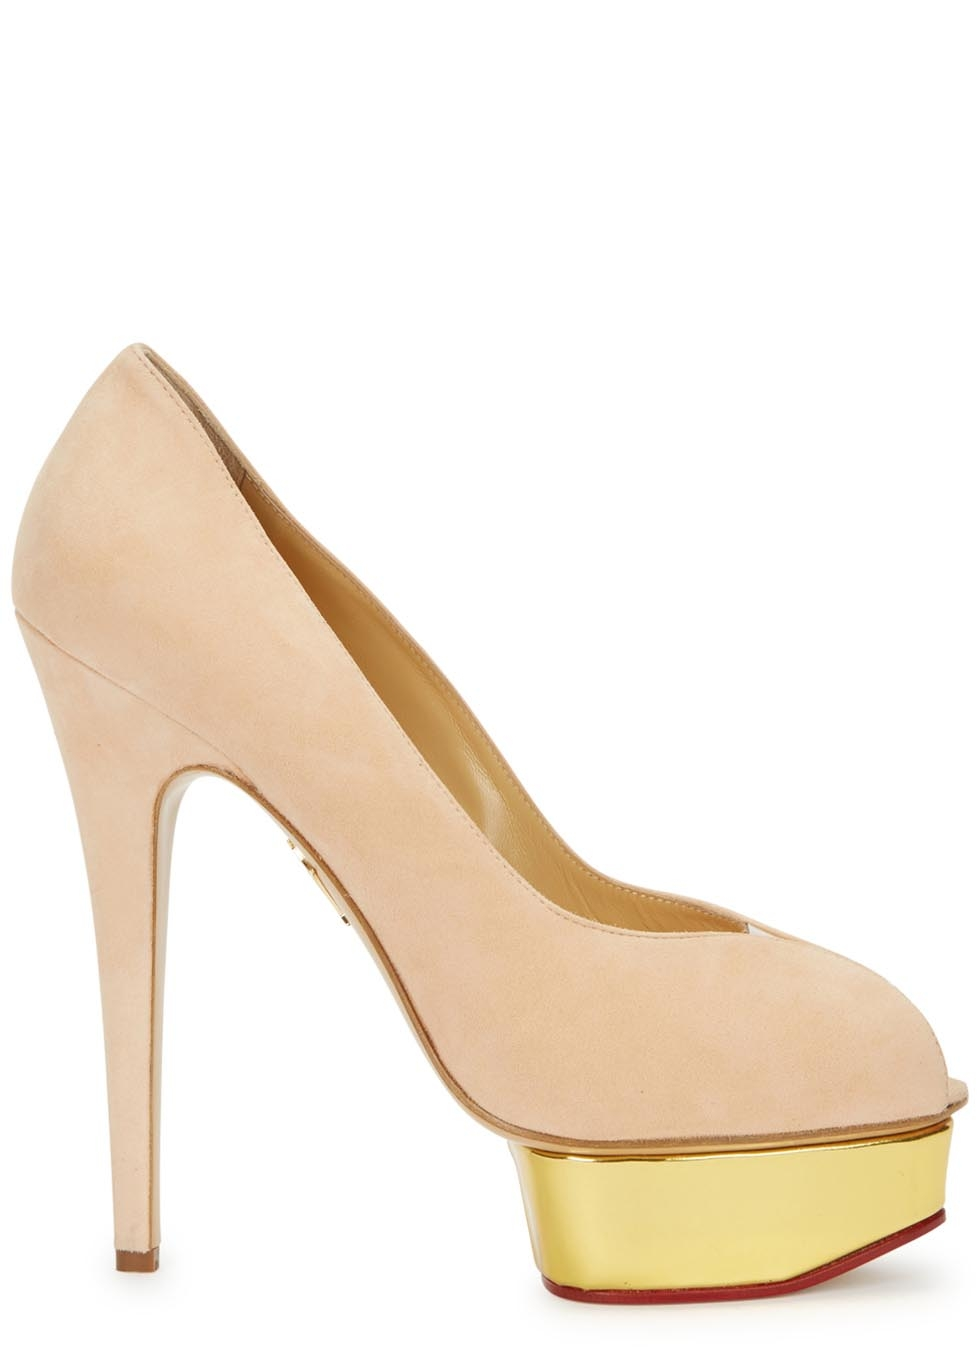 Charlotte Olympia pumps – were £545, now £218